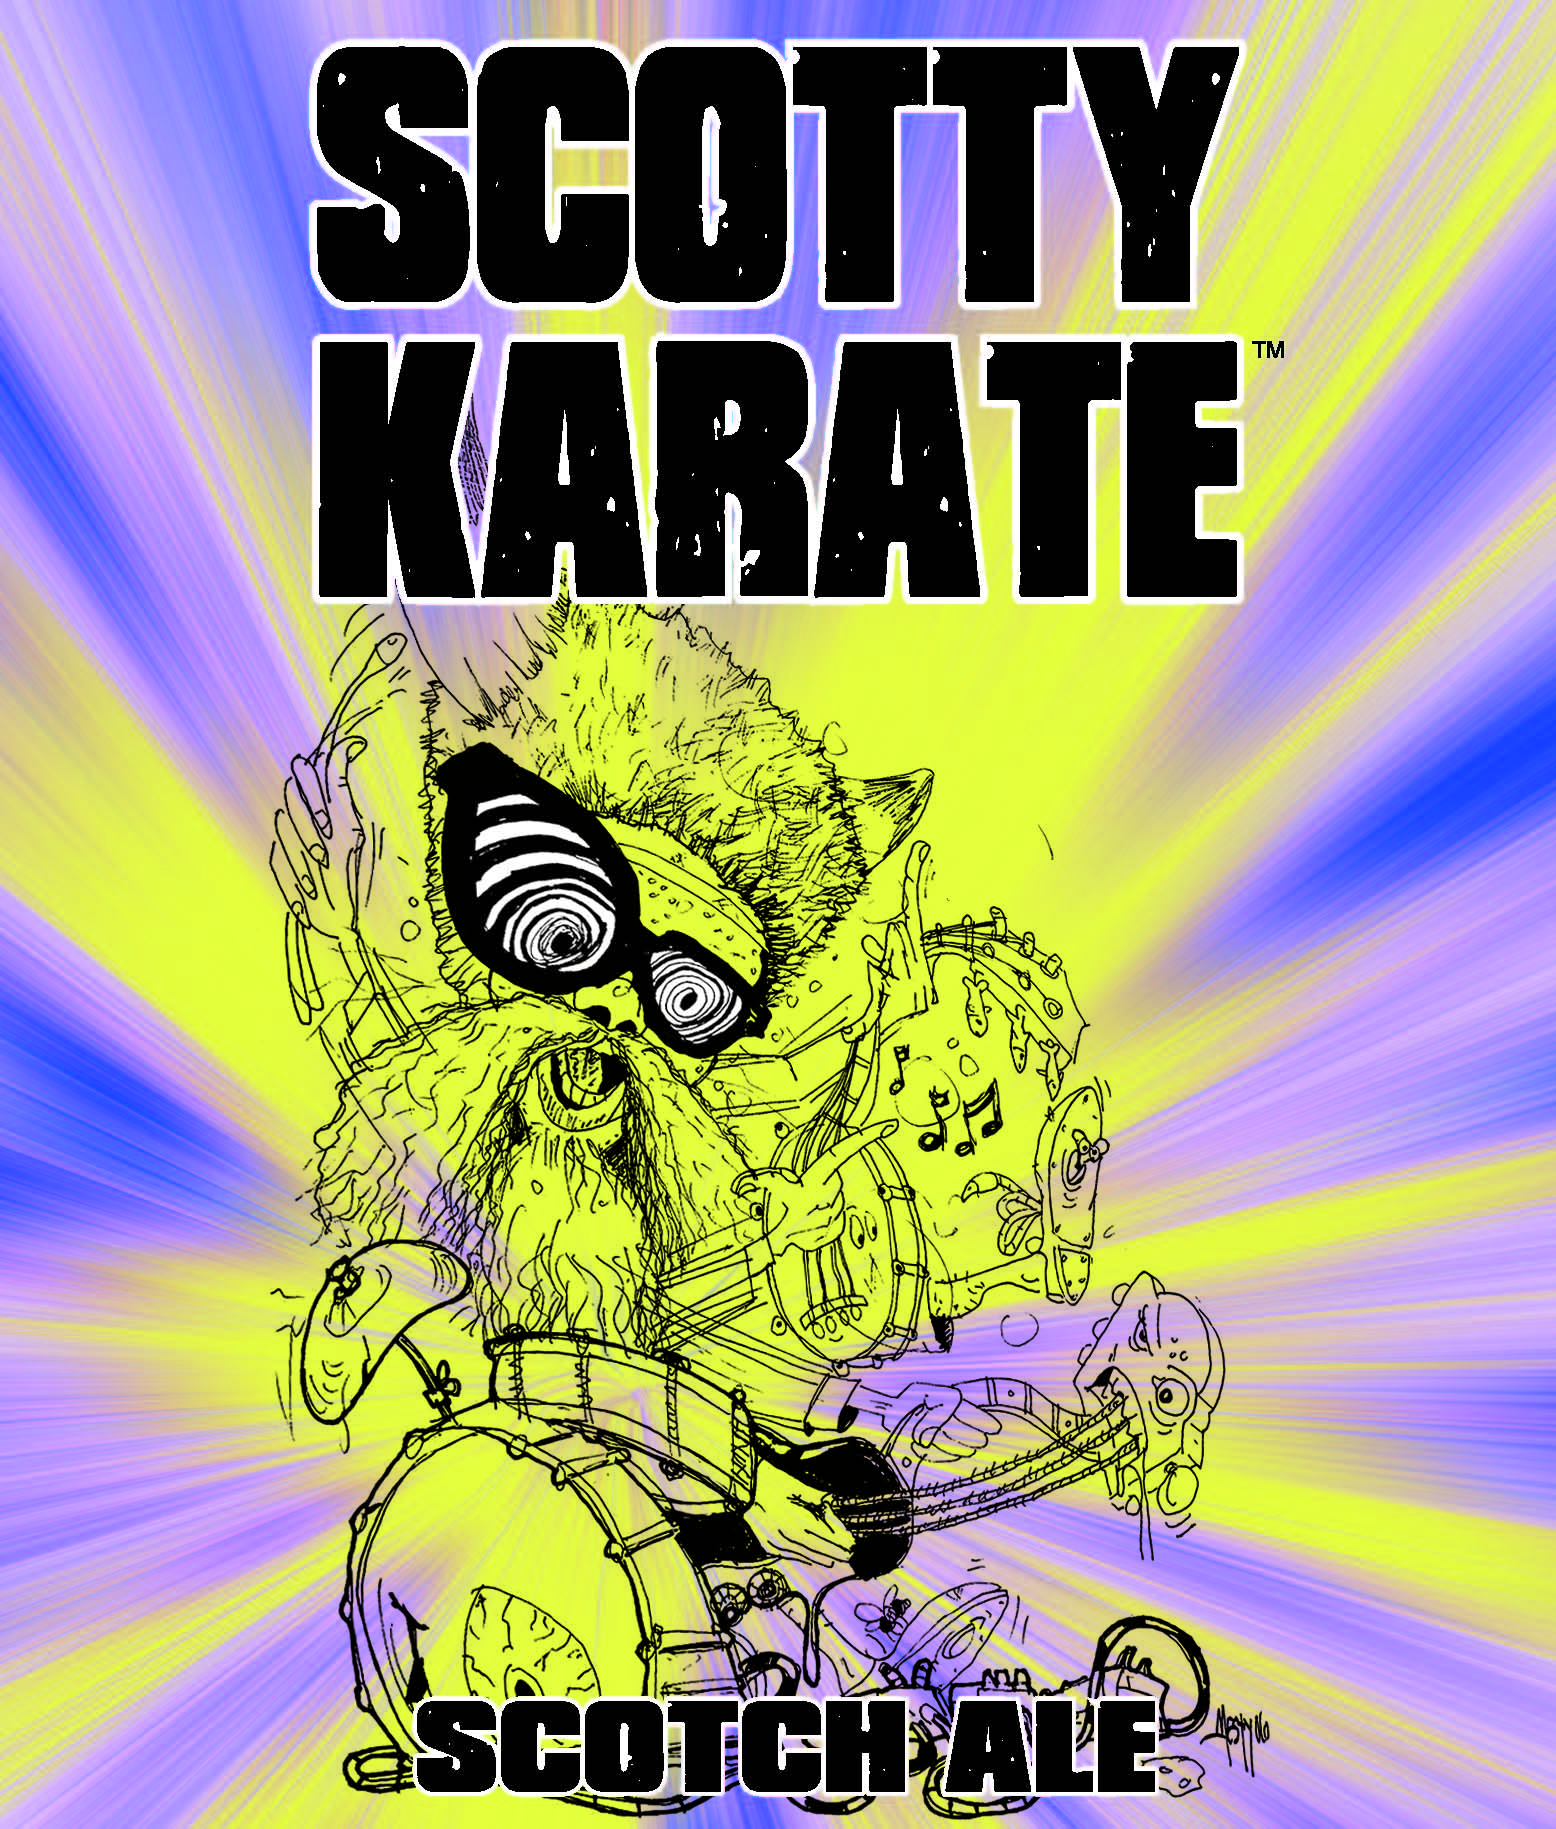 Scotty Karate